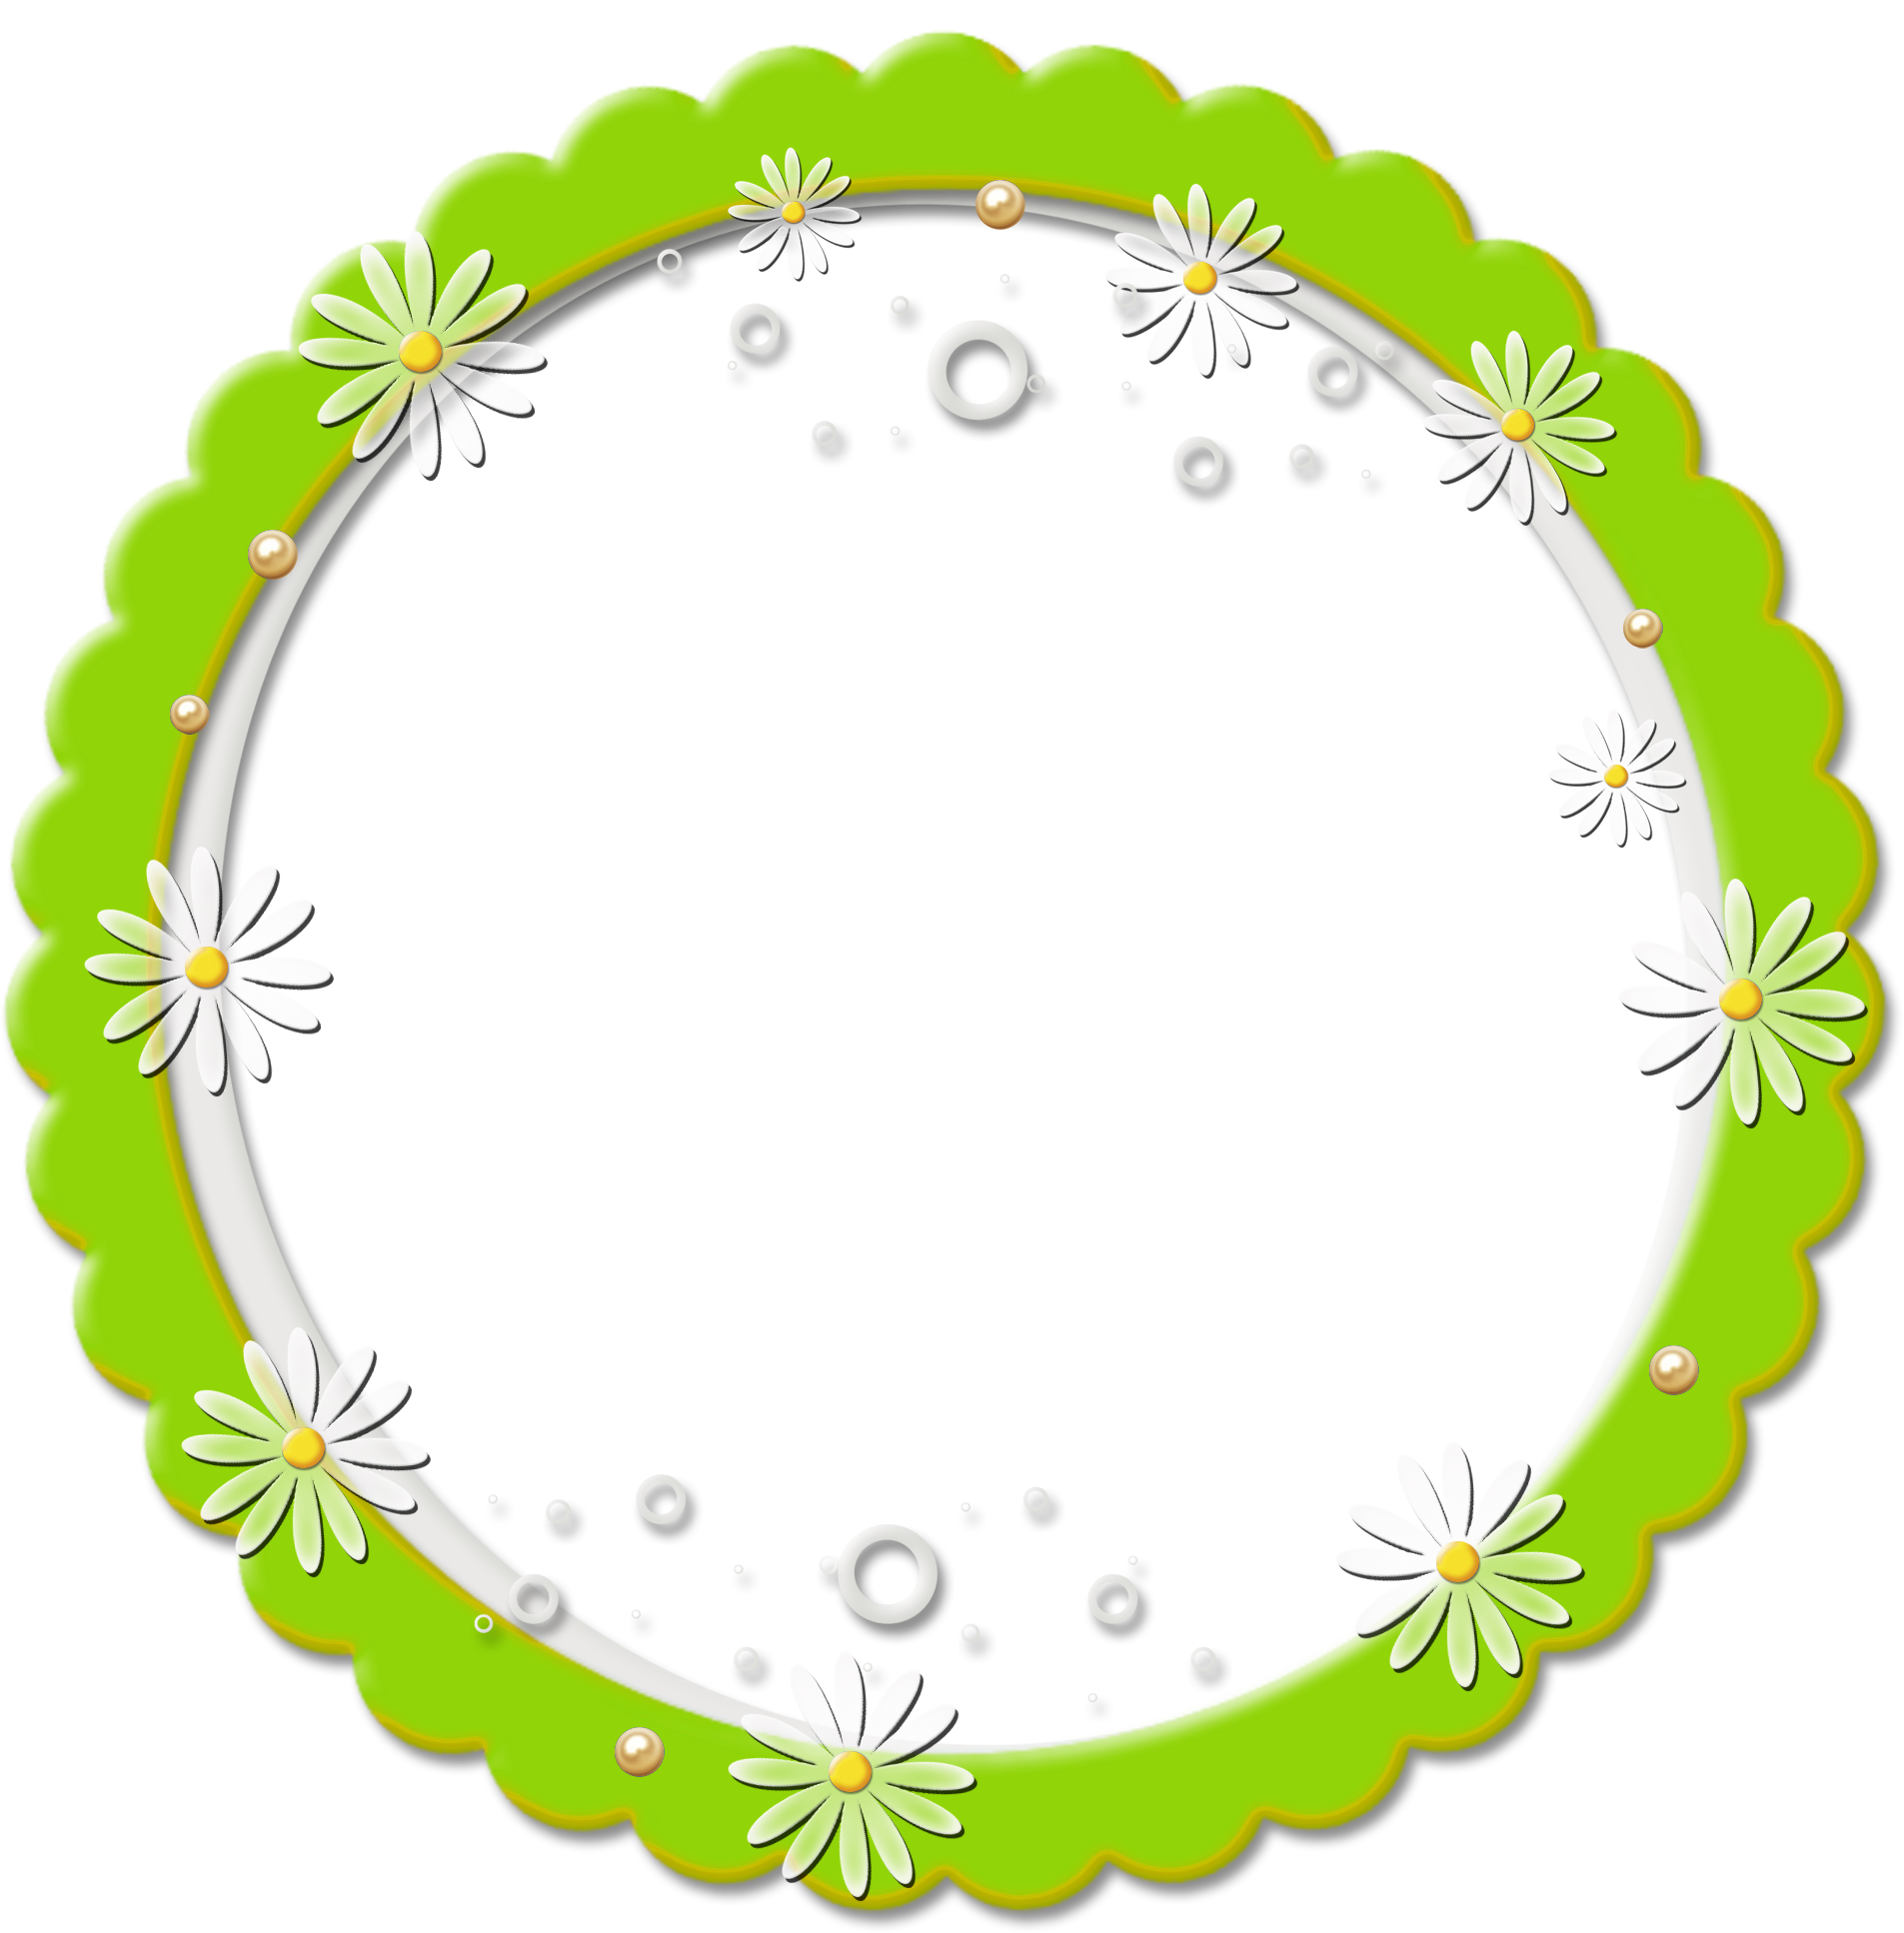 Cute png round daisy. Frames clipart frog